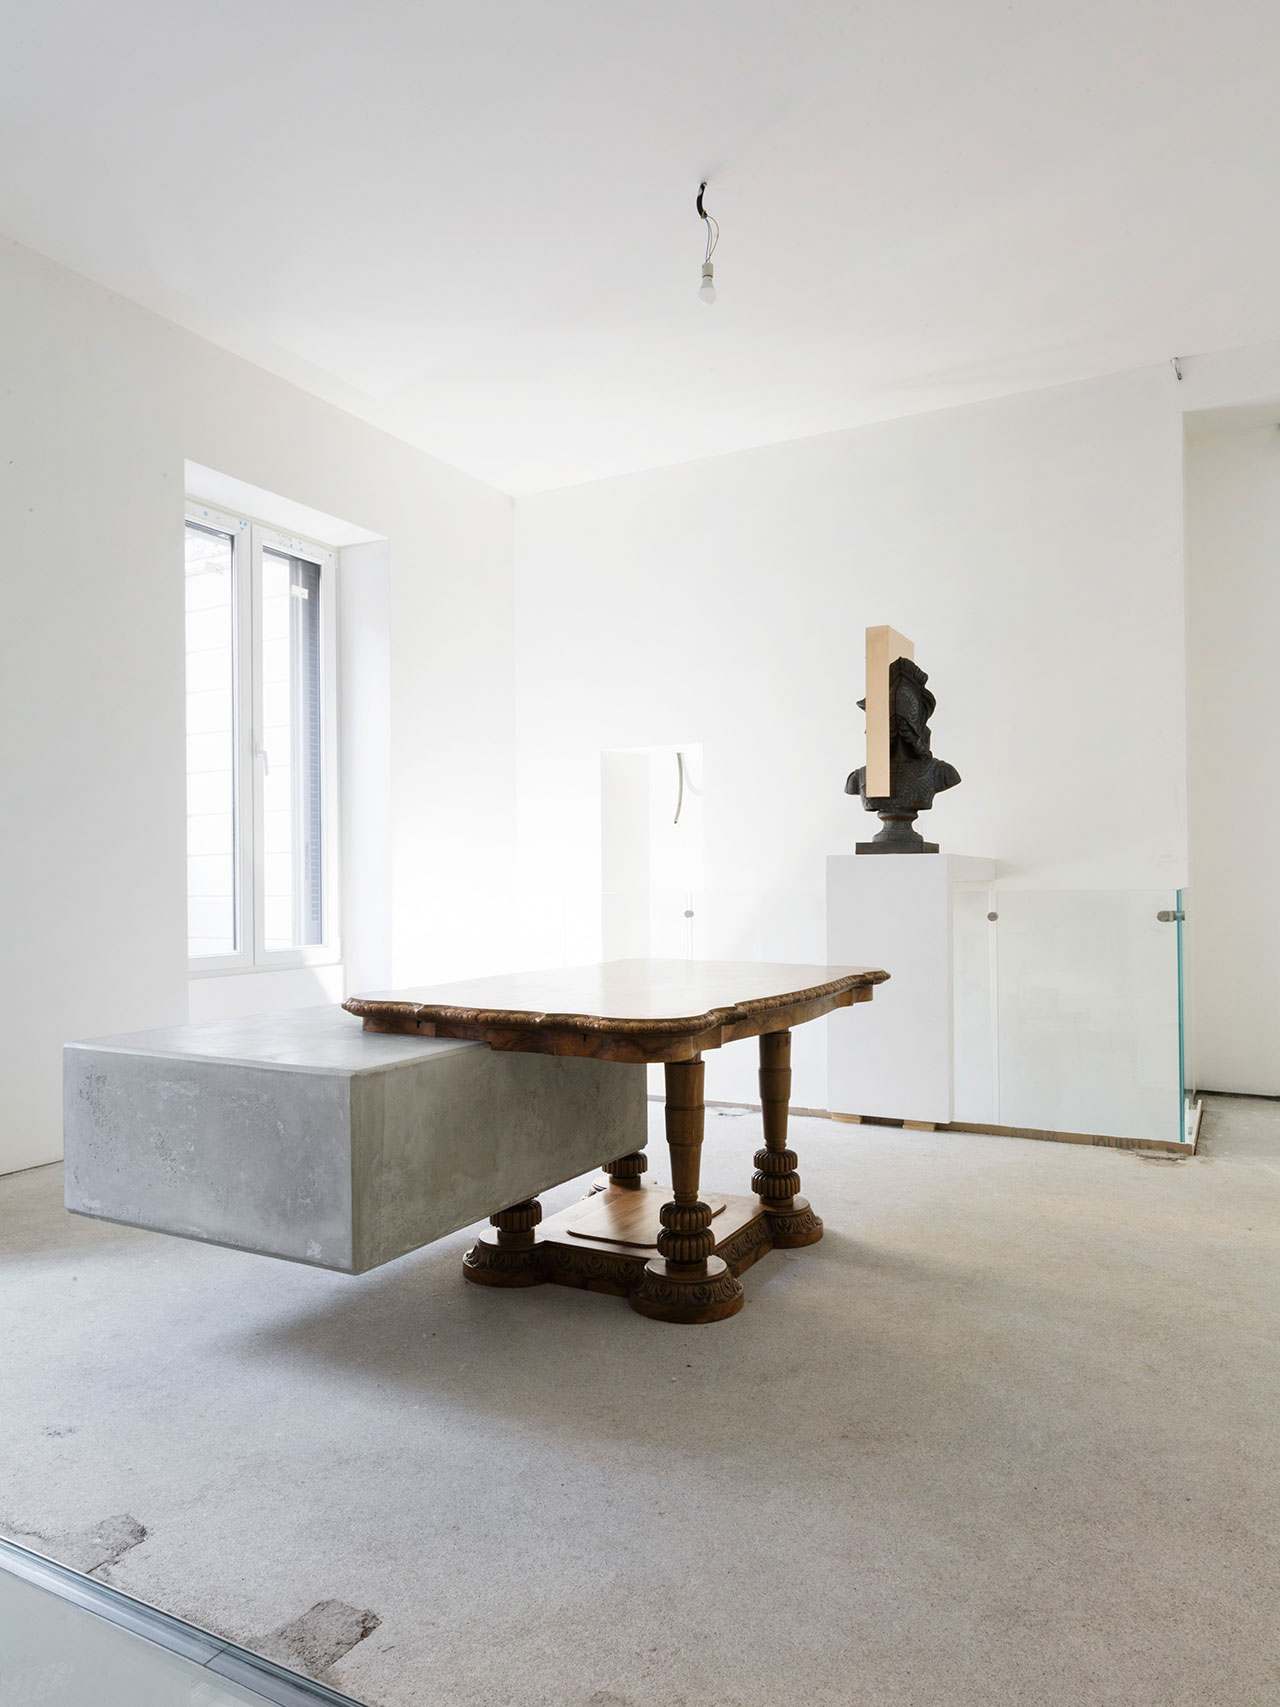 "Nucleo (Piergiorgio Robino + Marzia Ricci), ""Boolean"" And  (Table), 2017. Concrete, vintage furniture204 x 142 x 80h cm. Unique piece. Photo by Studio Pepe Fotografia."